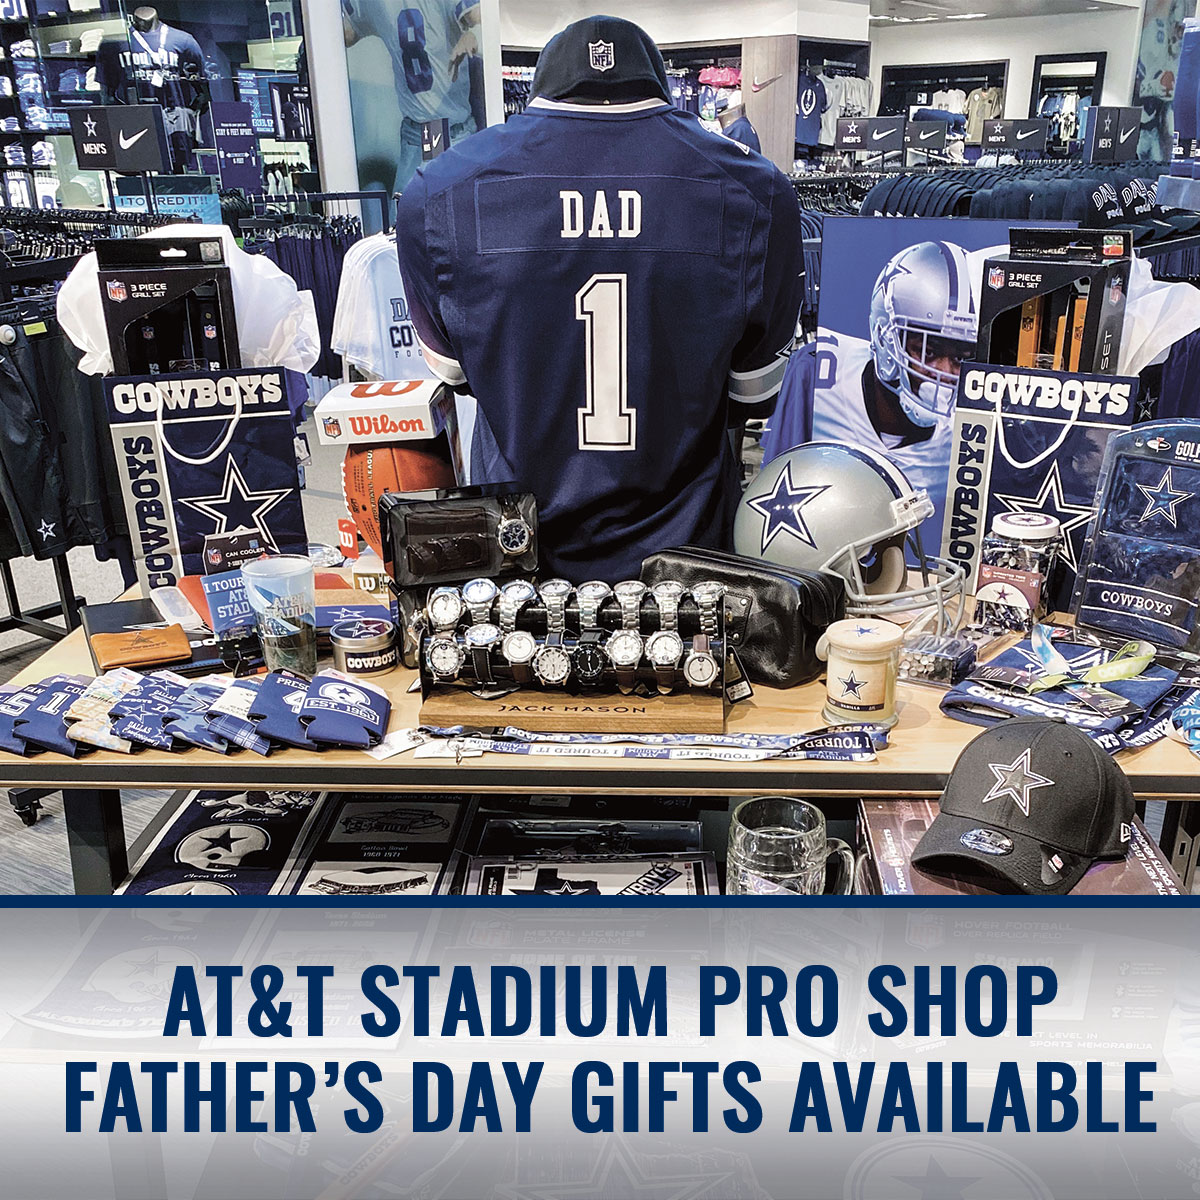 #CowboysNation, join us in the #ATTStadium Pro Shop for your #FathersDay gifts! 🌟 https://t.co/PEo3r49pbW